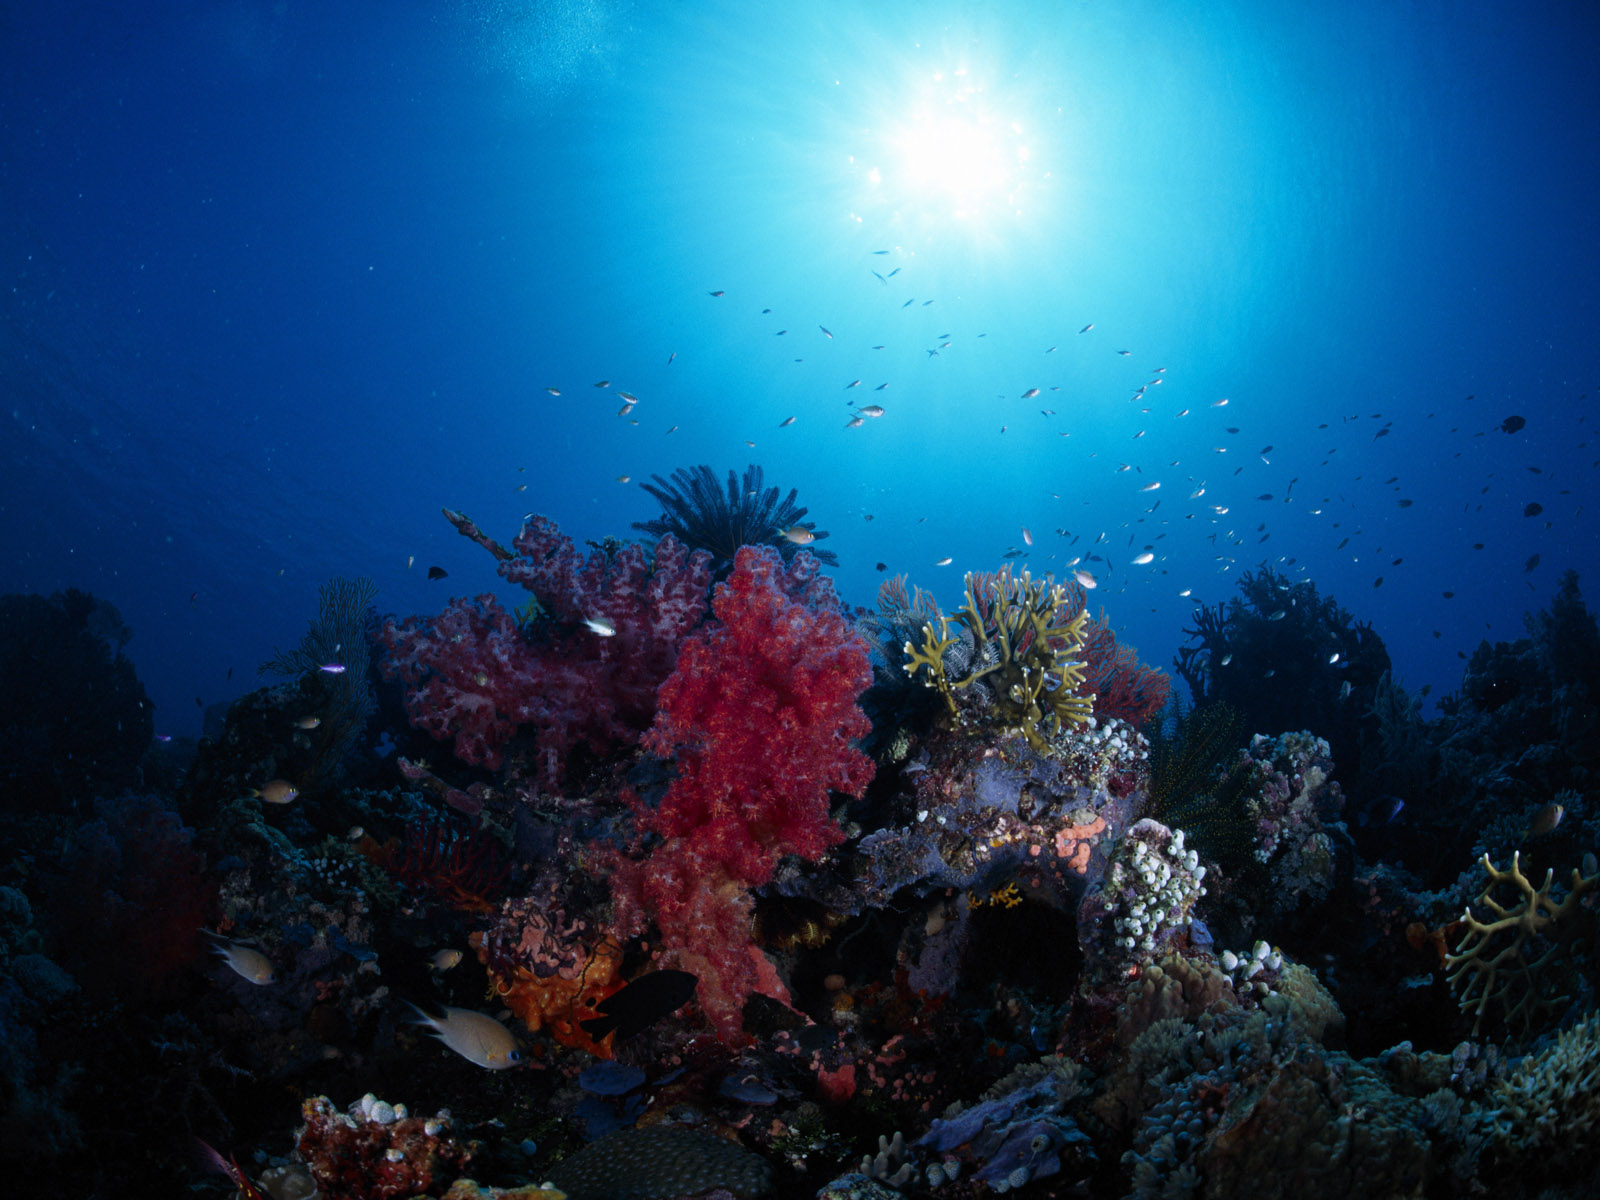 Underwater sea fishes hd wallpapers npicx we share - Underwater Beautiful Sea World Hd Pictures Npicx We Share